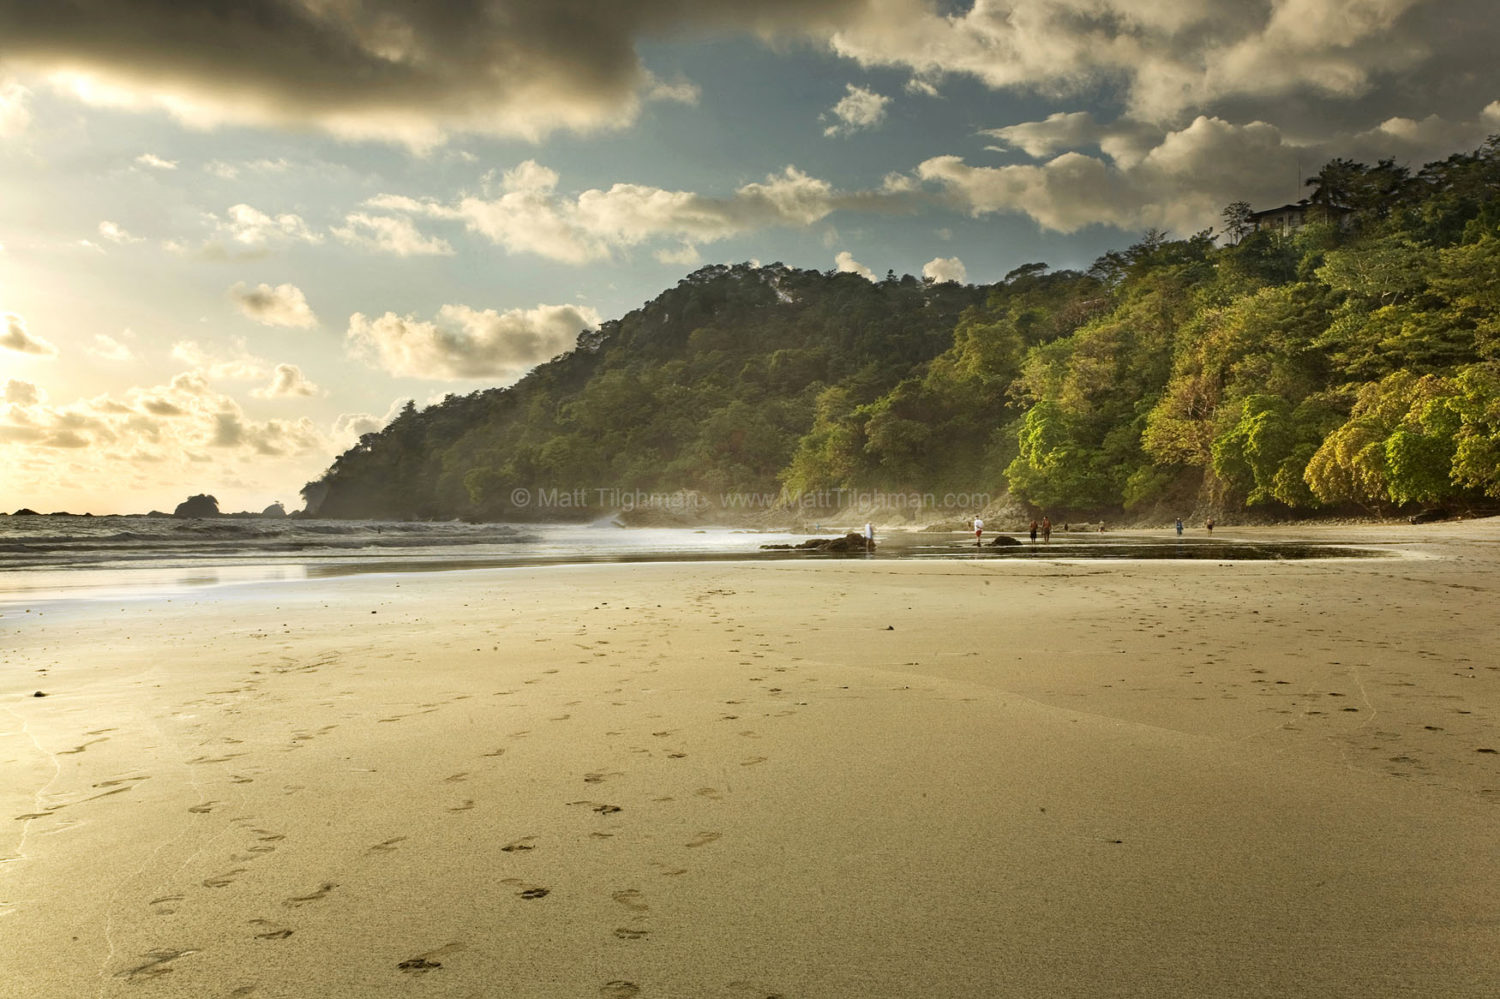 Fine art stock photograph of Manuel Antonio National Park, in Costa Rica. The late afternoon light turns both the beach and jungle a warm gold, echoing the heat of the tropical sun.